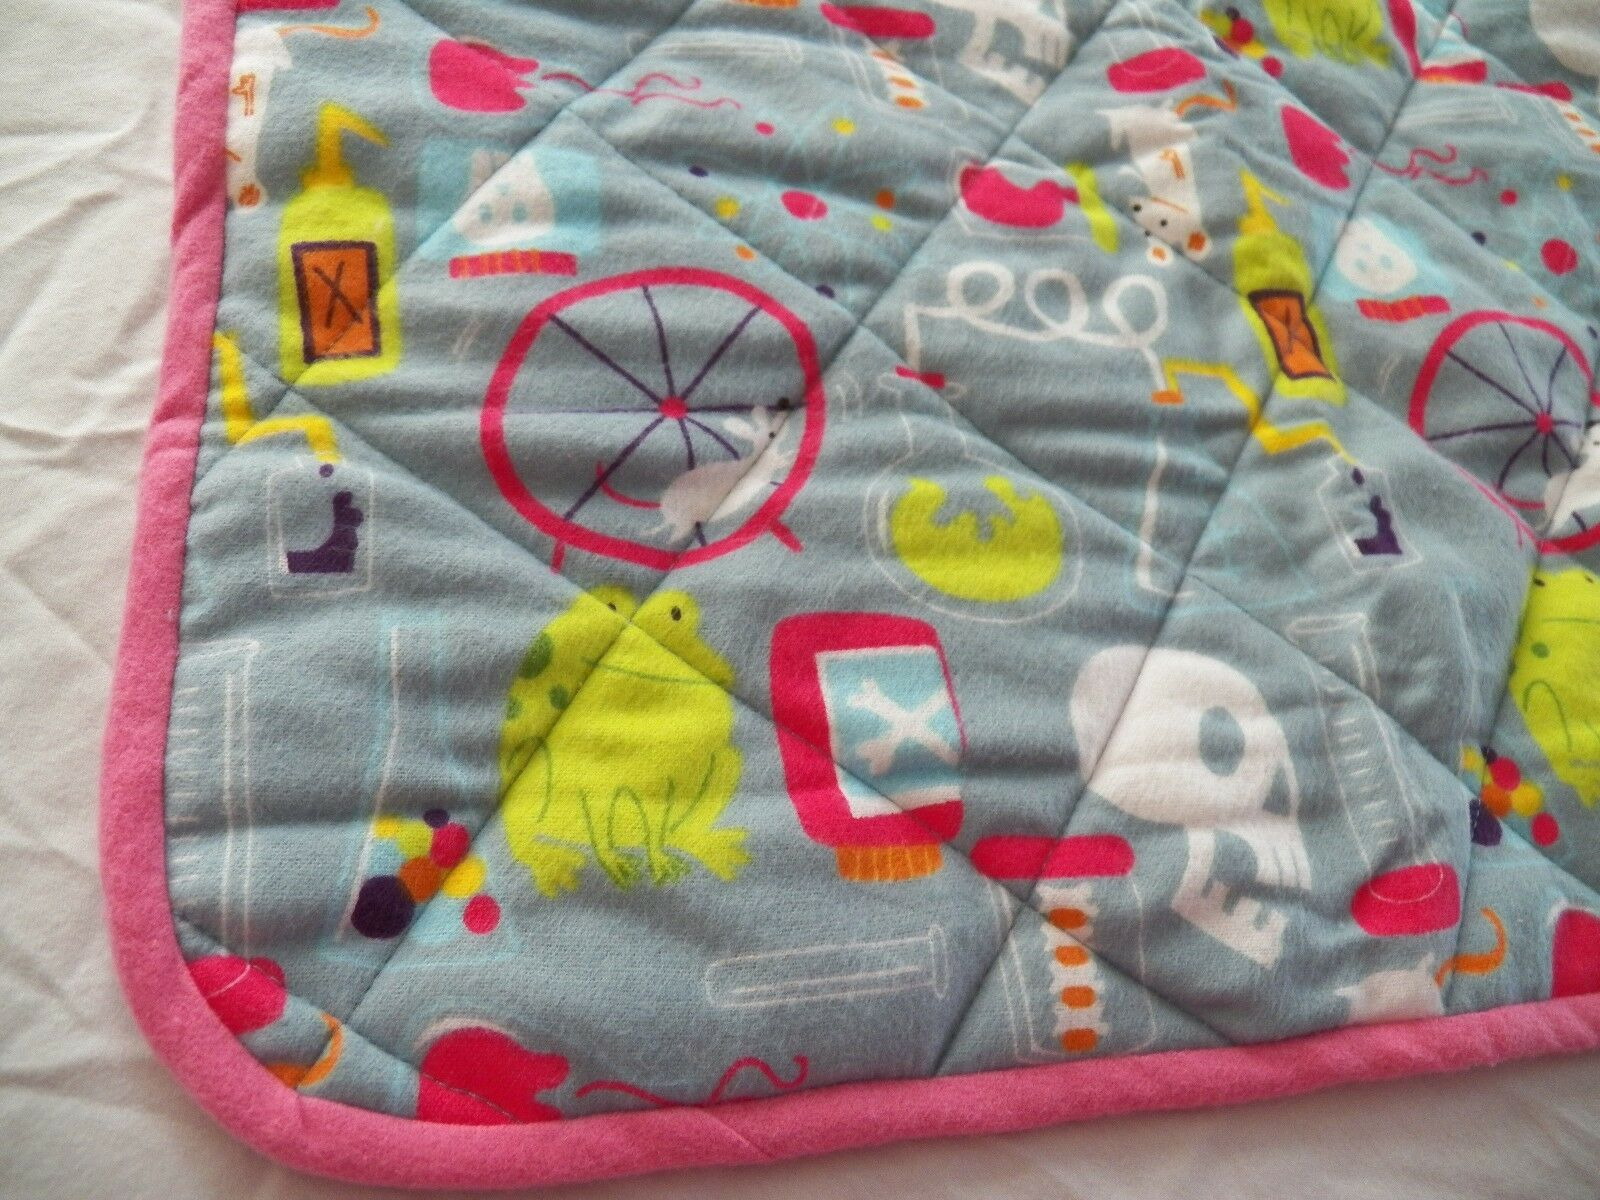 BABY CHANGING PAD Portable Diaper Travel Mat Cotton Washable Padded Handmade NEW 14